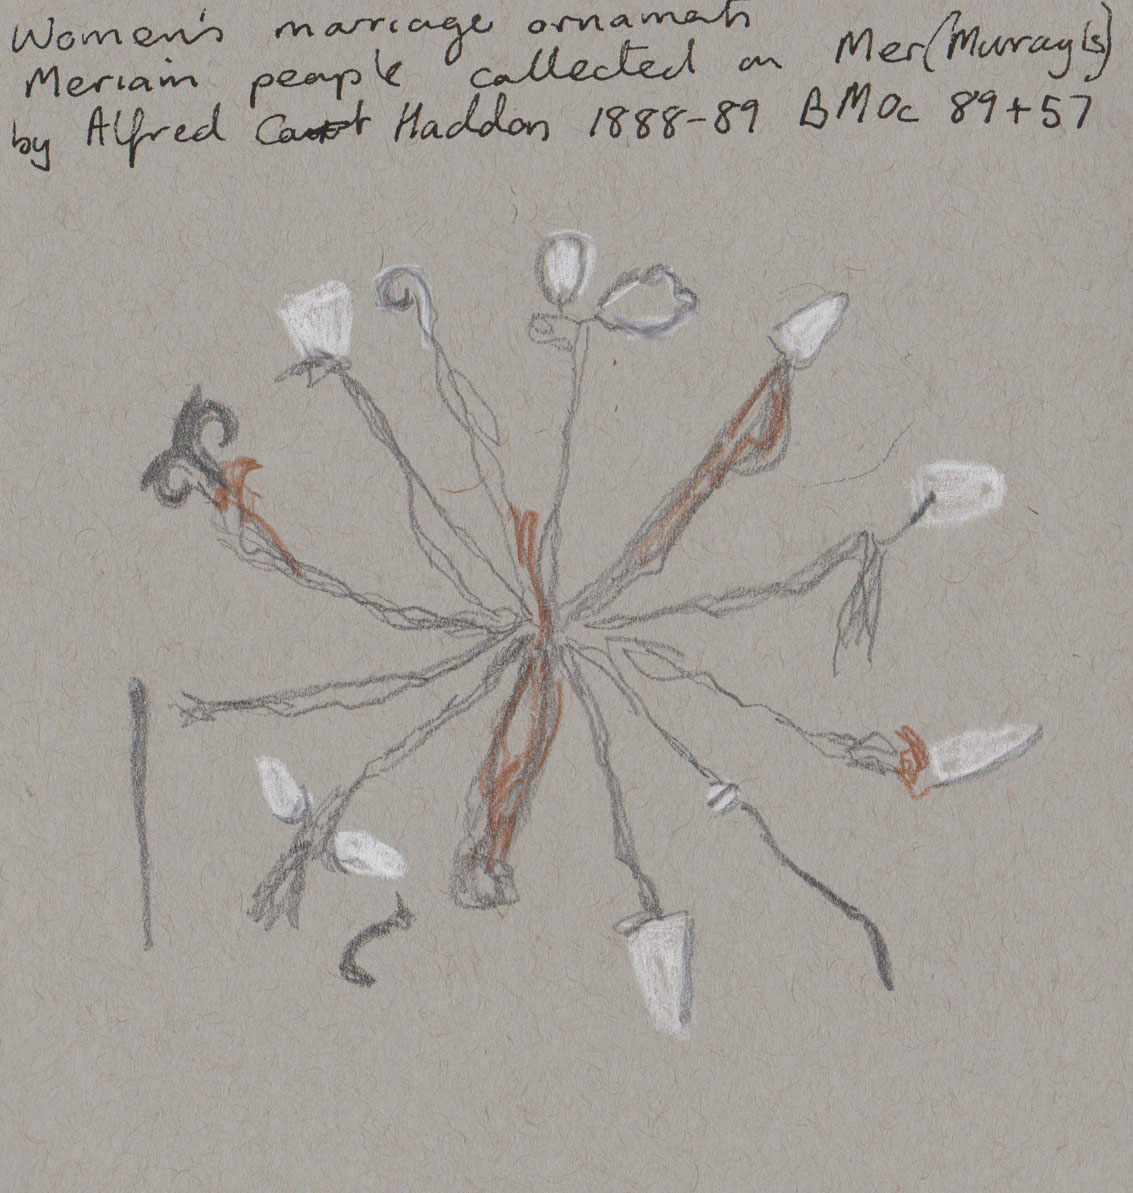 Women's marriage ornaments, Mer, late 1880's. My sketch graphite, white chalk and coloured pencil on grey-toned paper